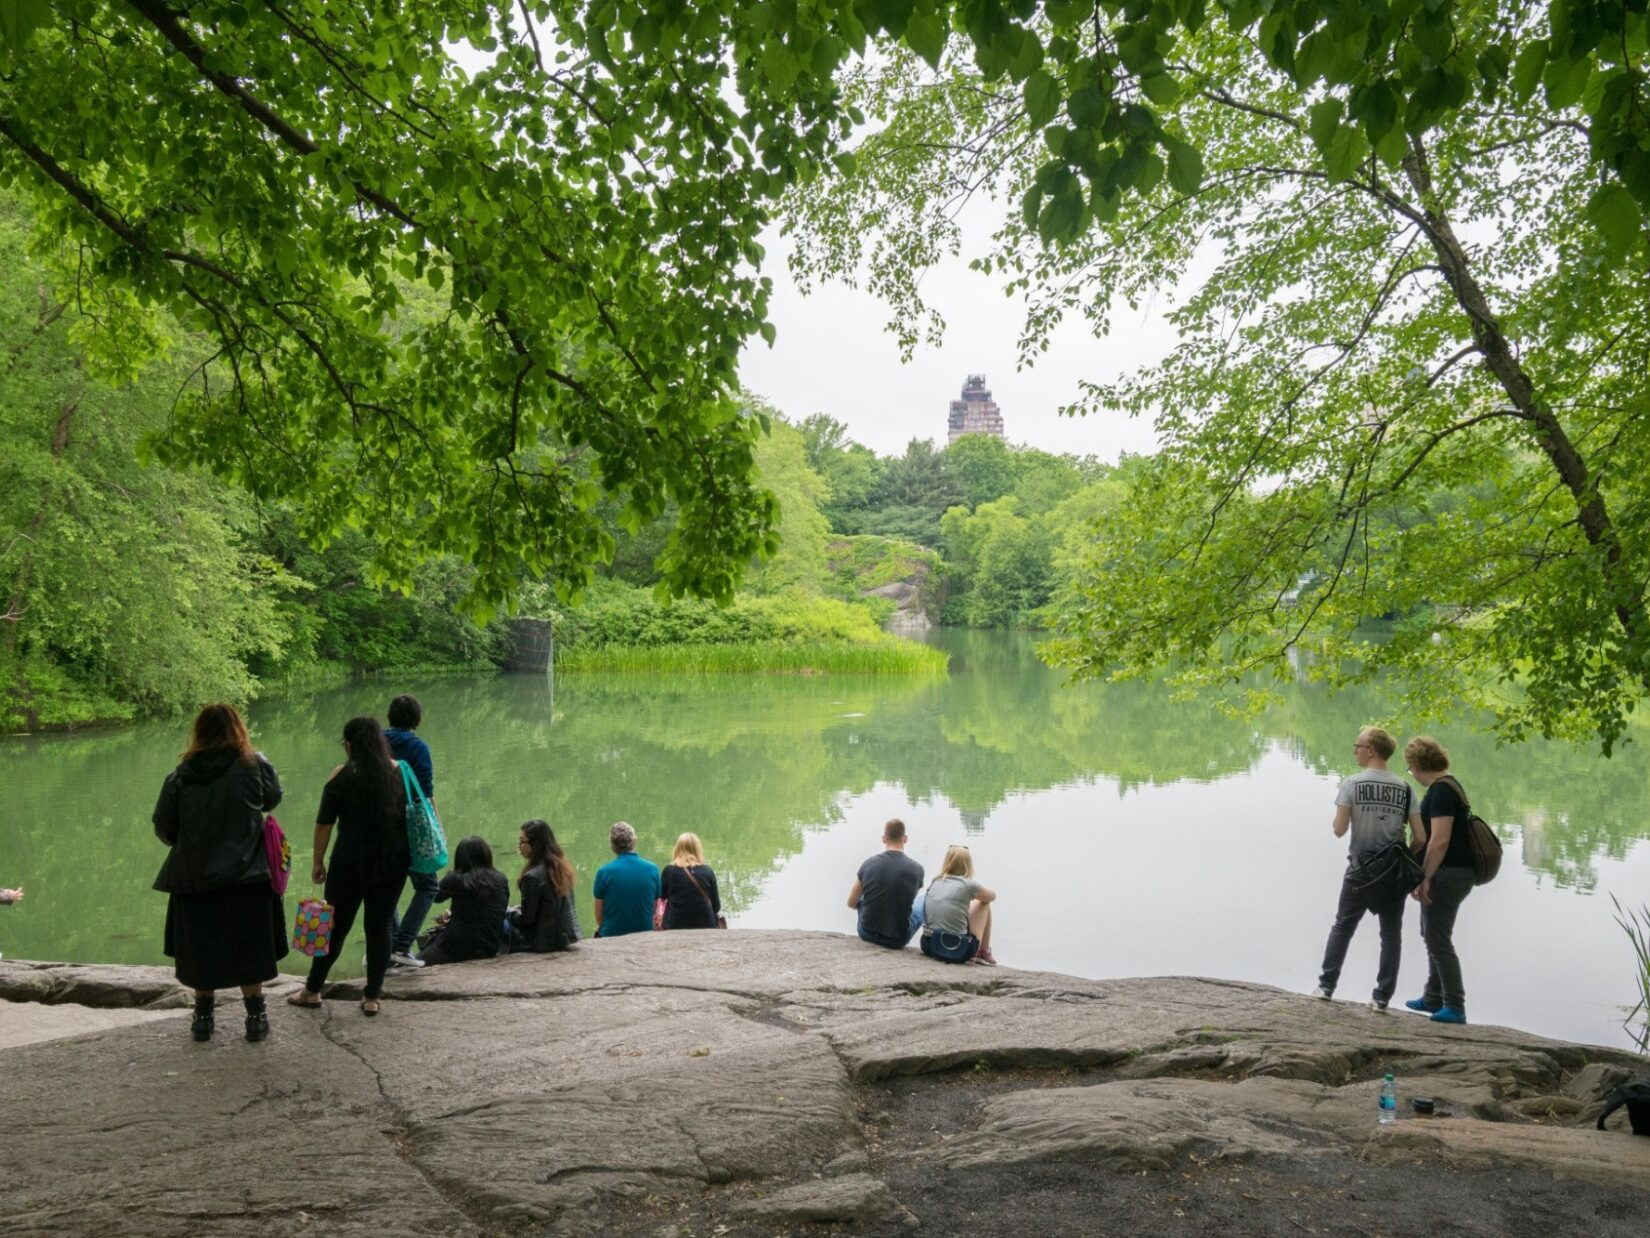 Summer park-goers sit on a wide rock under the shade, taking in the expanse of Turtle Pond.